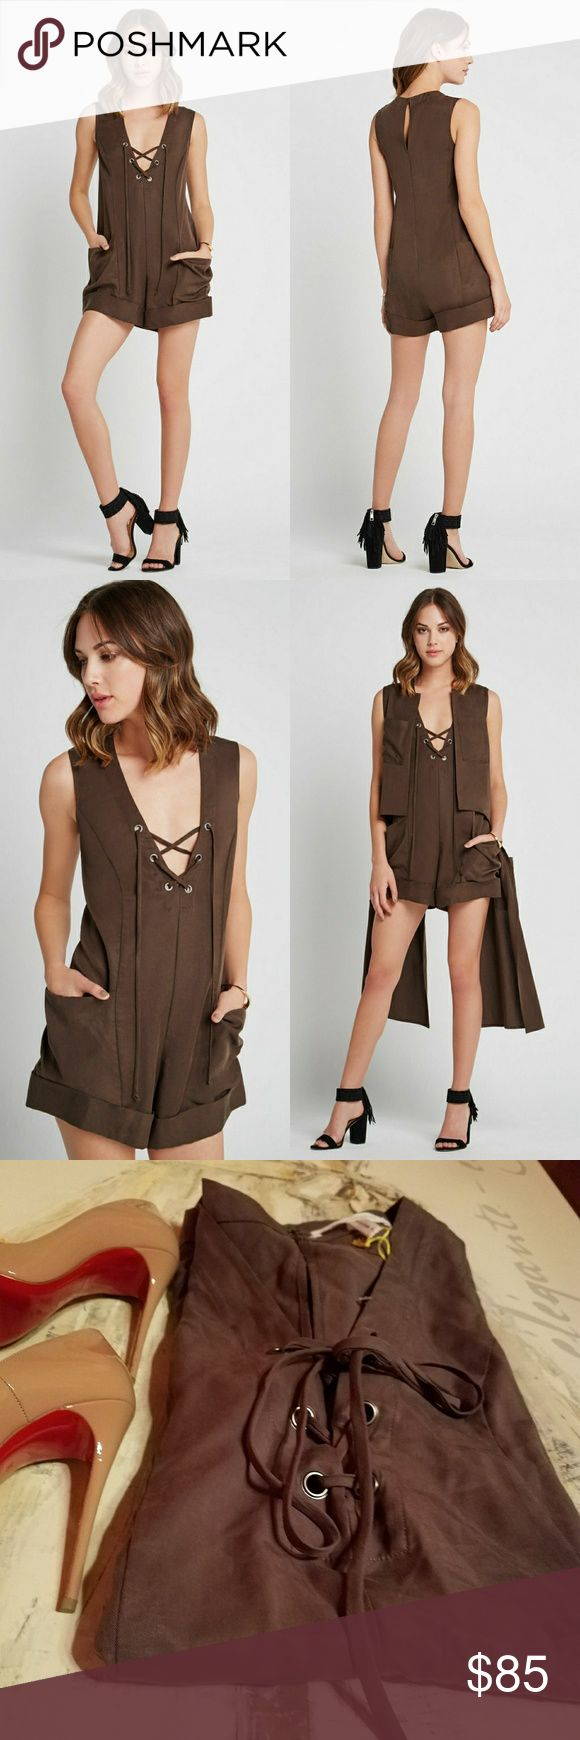 BCBGeneration Women's Lace up Romper 100% Lyocell Lace-up v-neckline Sleeveless Front patch pockets  Never worn, with tags. Purchased at Lord & Taylor, never tried on. Vest on Pic 2 also available for sale, bundle for savings! BCBGeneration Pants Jumpsuits & Rompers